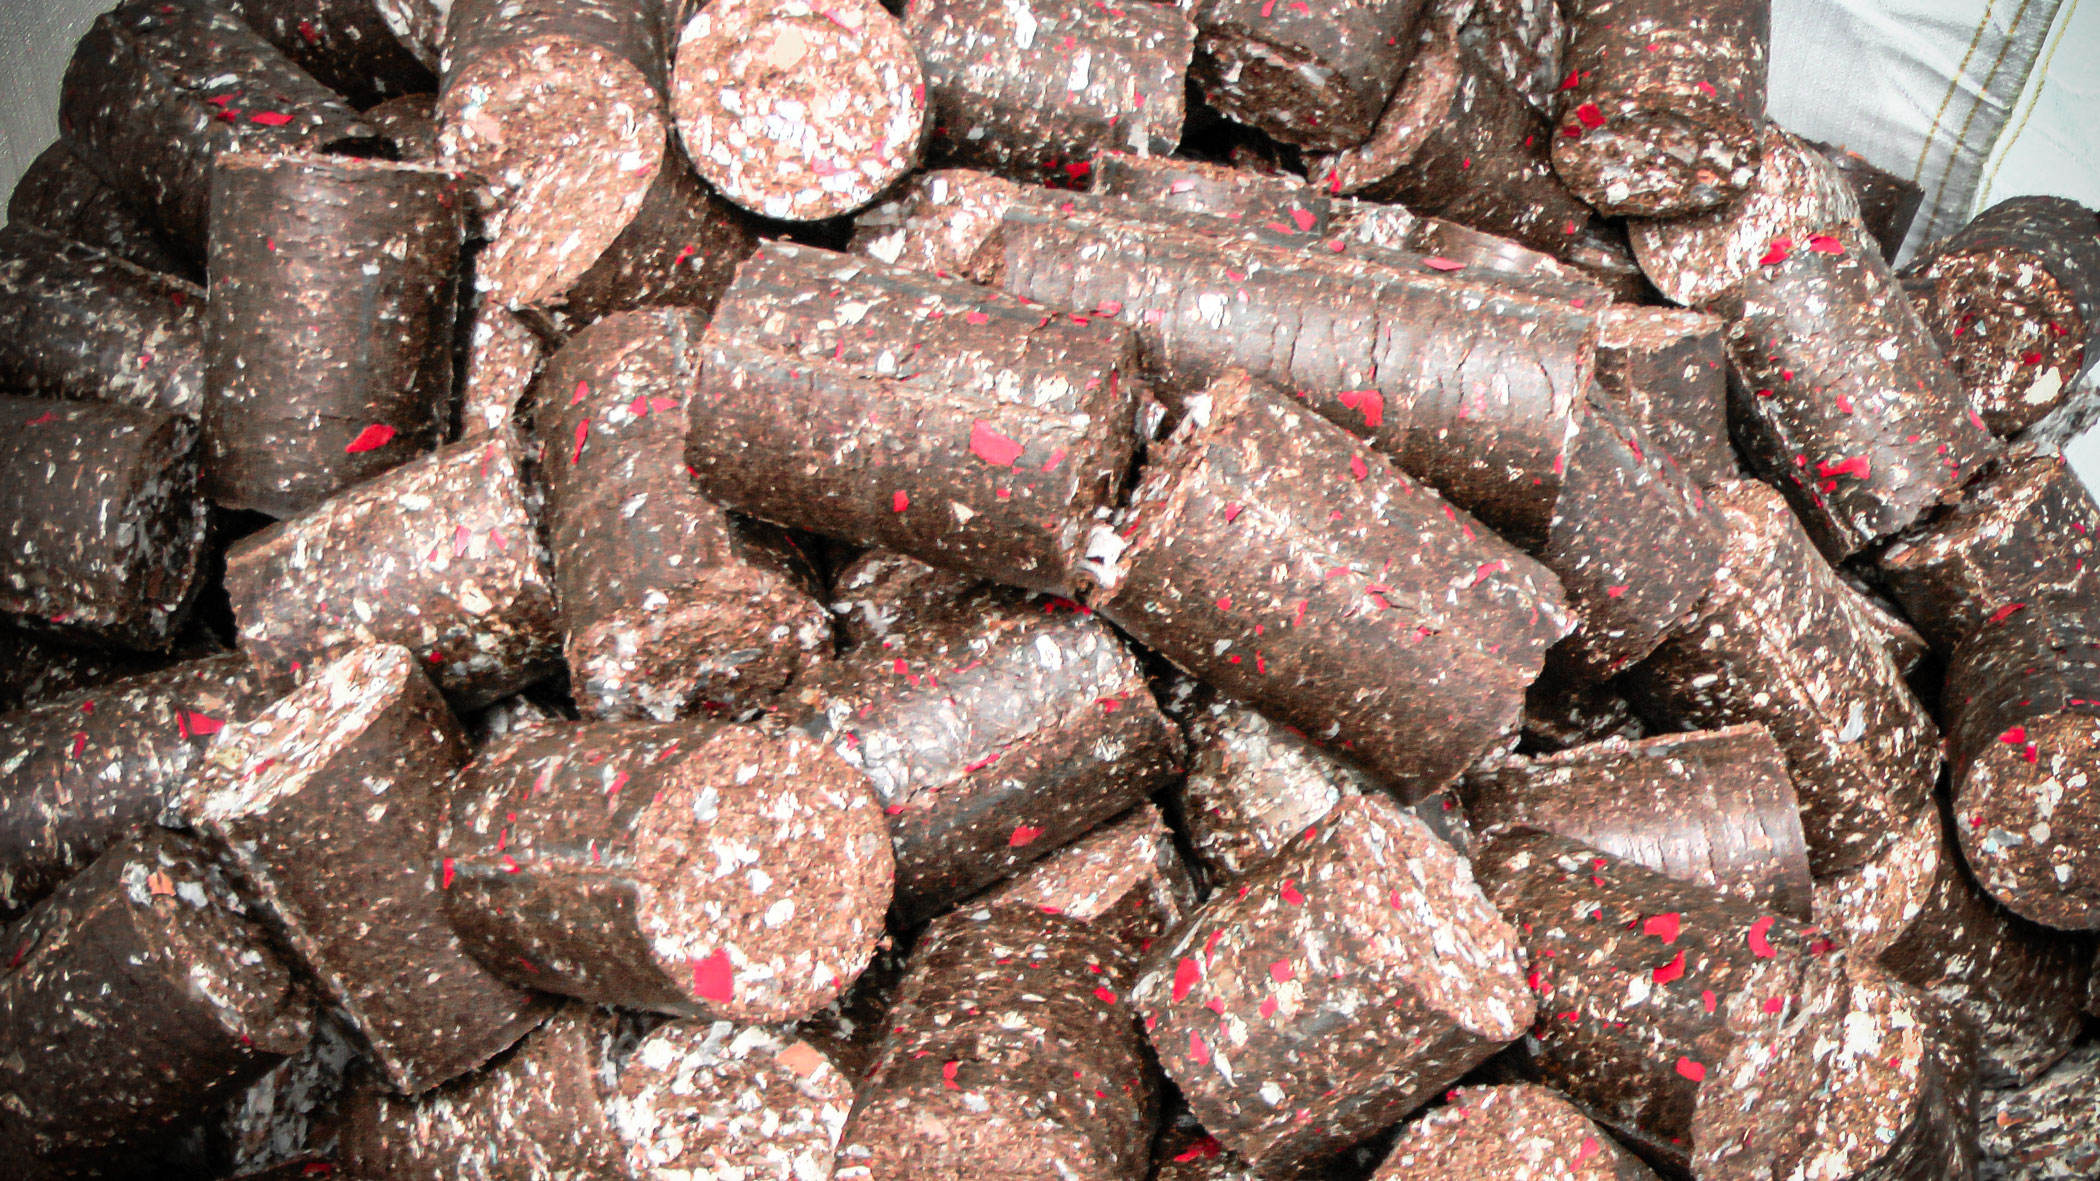 Briquettes from tobacco